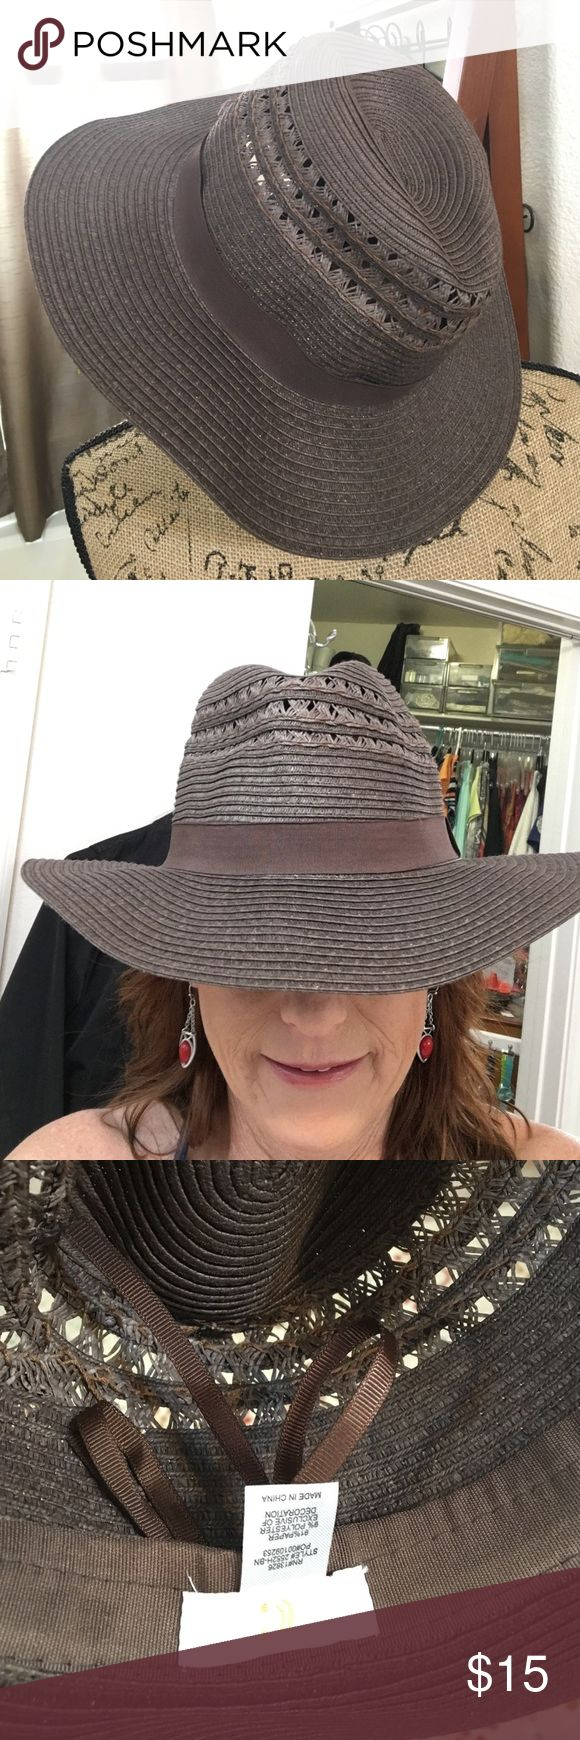 Cute Chocolate Brown Fedora Beach Hat New Beach Hat. With adjustable tie. Charming Charlie Accessories Hats